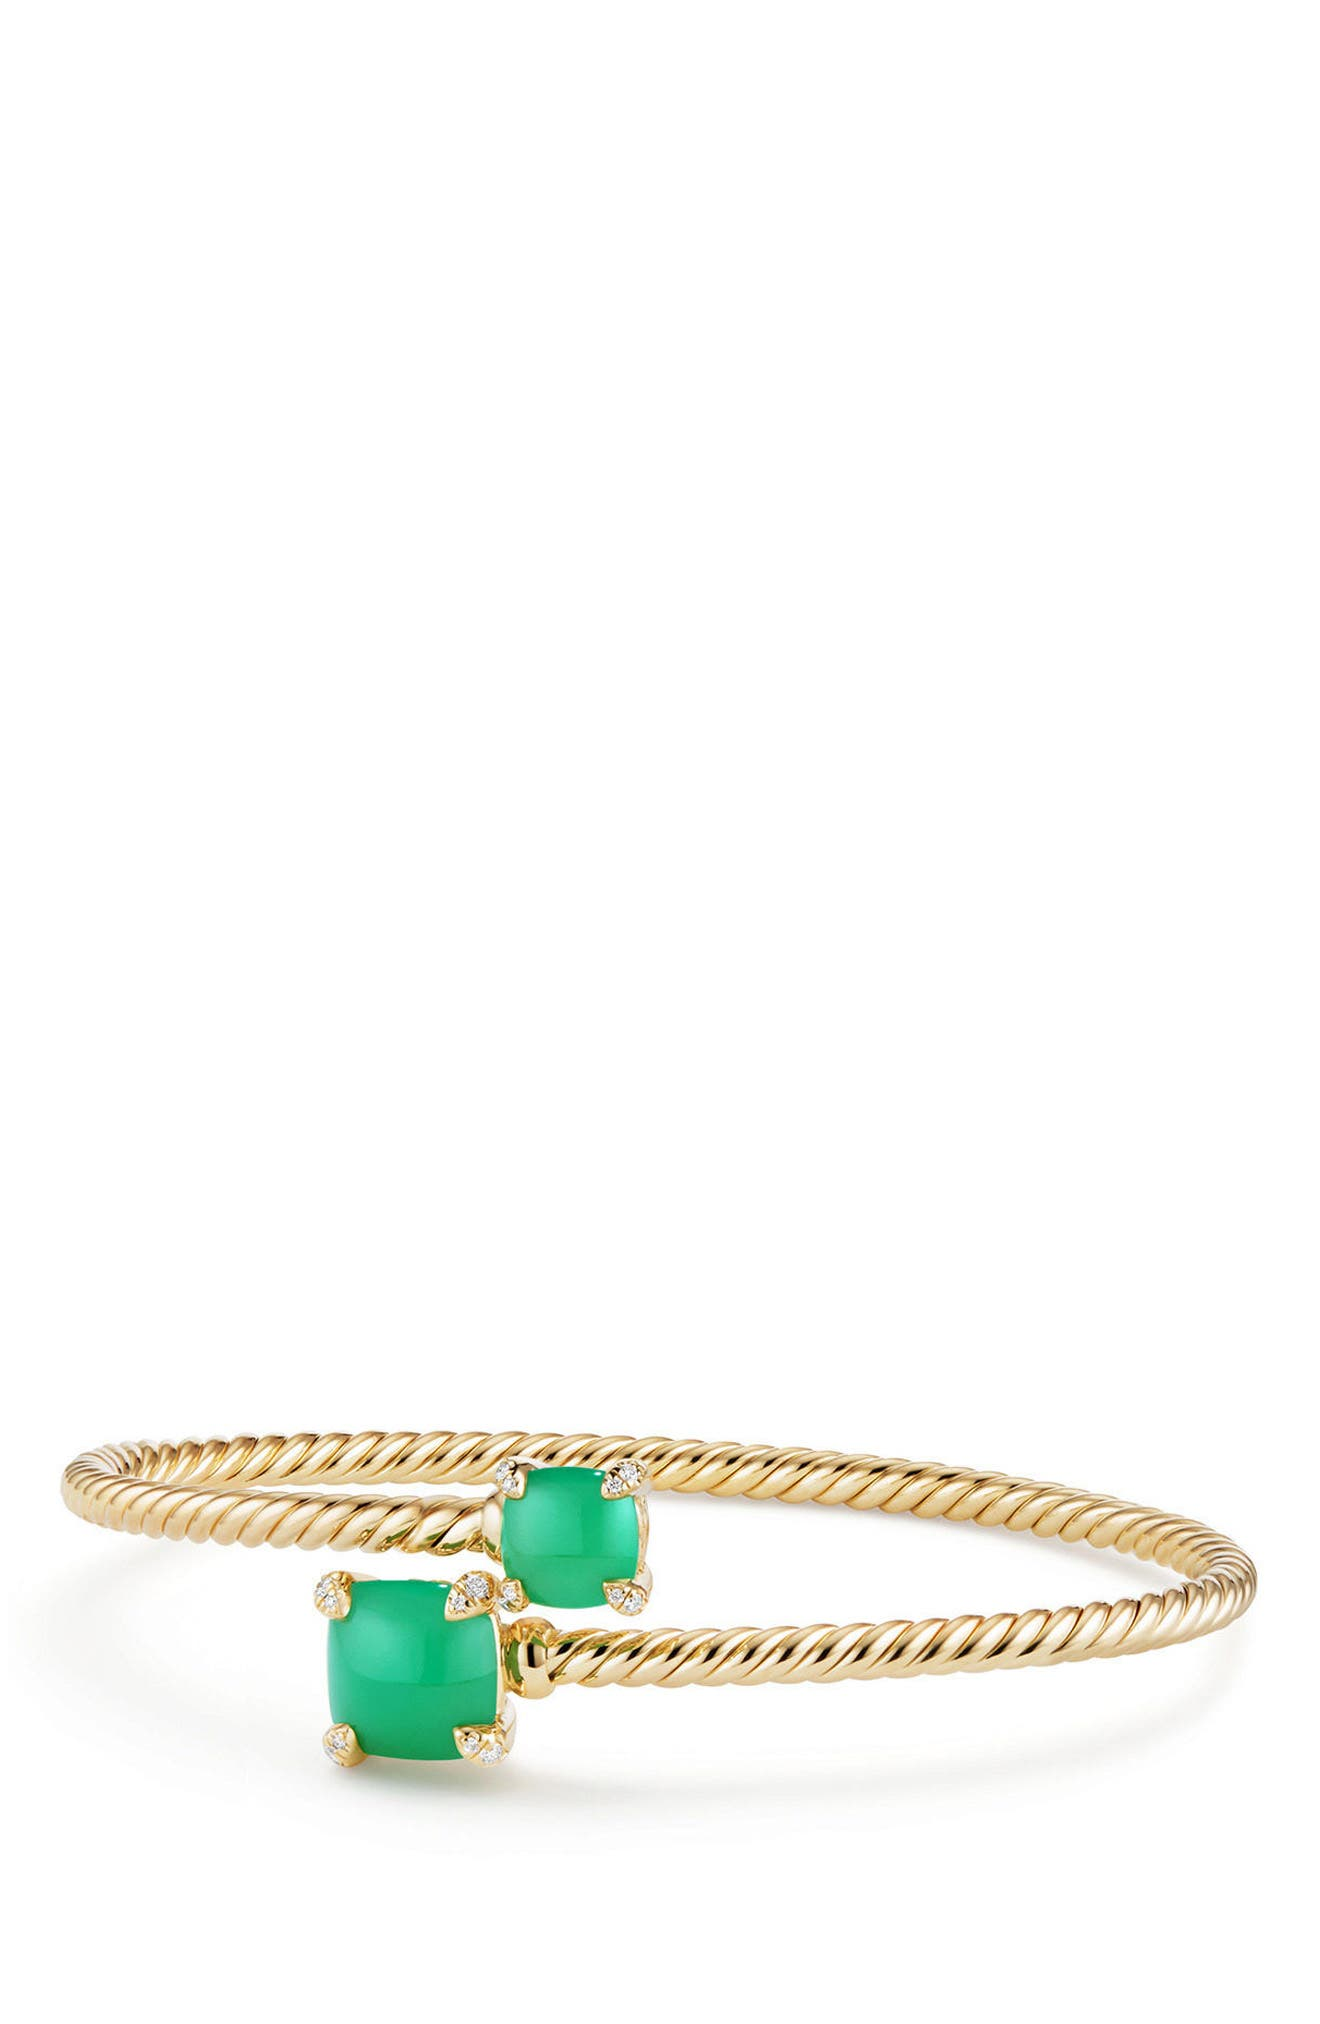 Châtelaine Bypass Bracelet with Semiprecious Stone & Diamonds in 18K Gold,                             Main thumbnail 1, color,                             CHRYSOPRASE